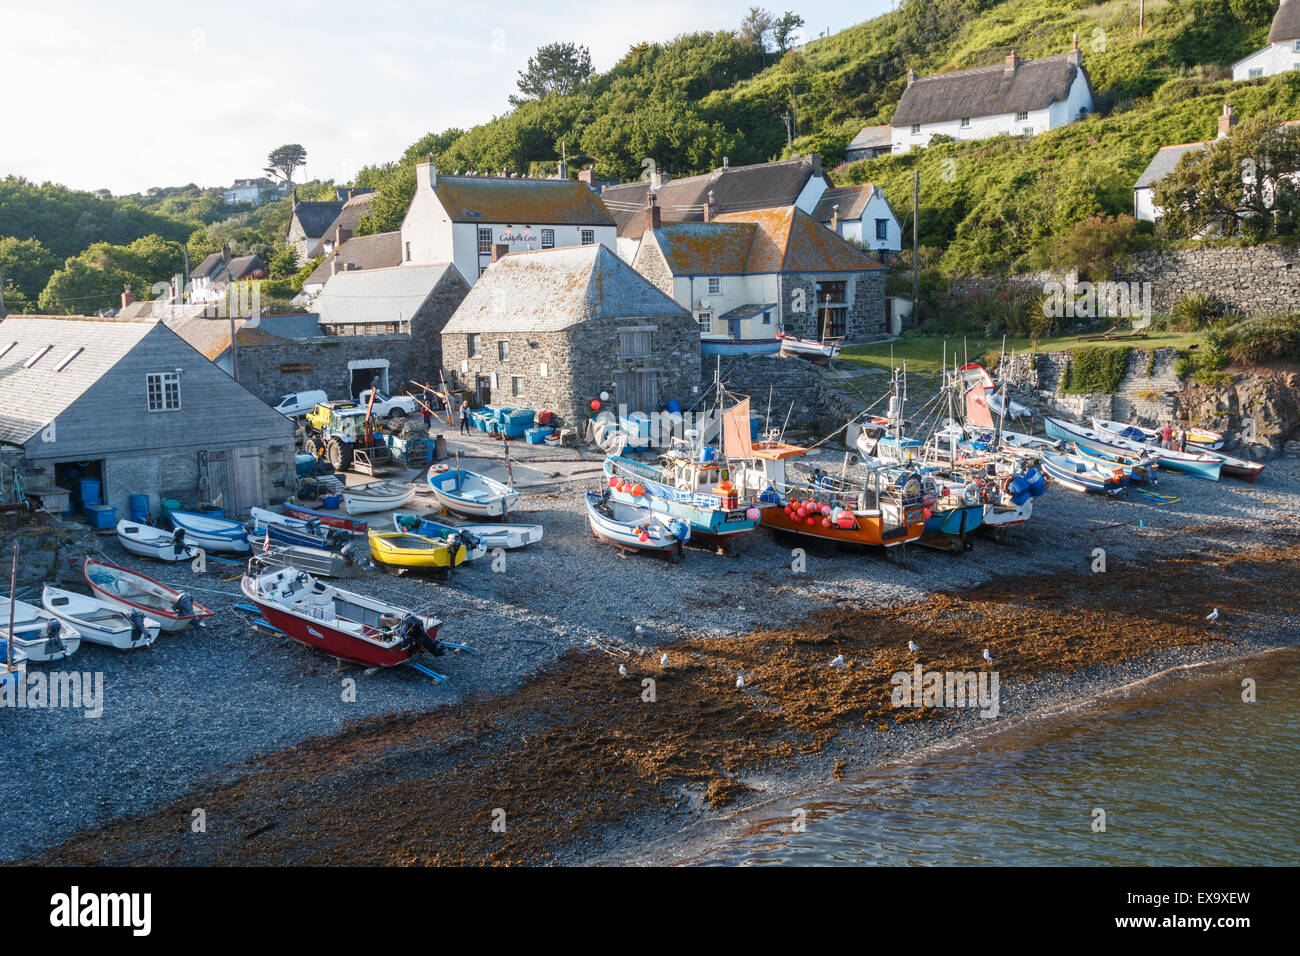 Cadgwith Cove - an unspoilt viallge on the Lizard peninsula has fishing boats drawn up on the beach at high tide. - Stock Image